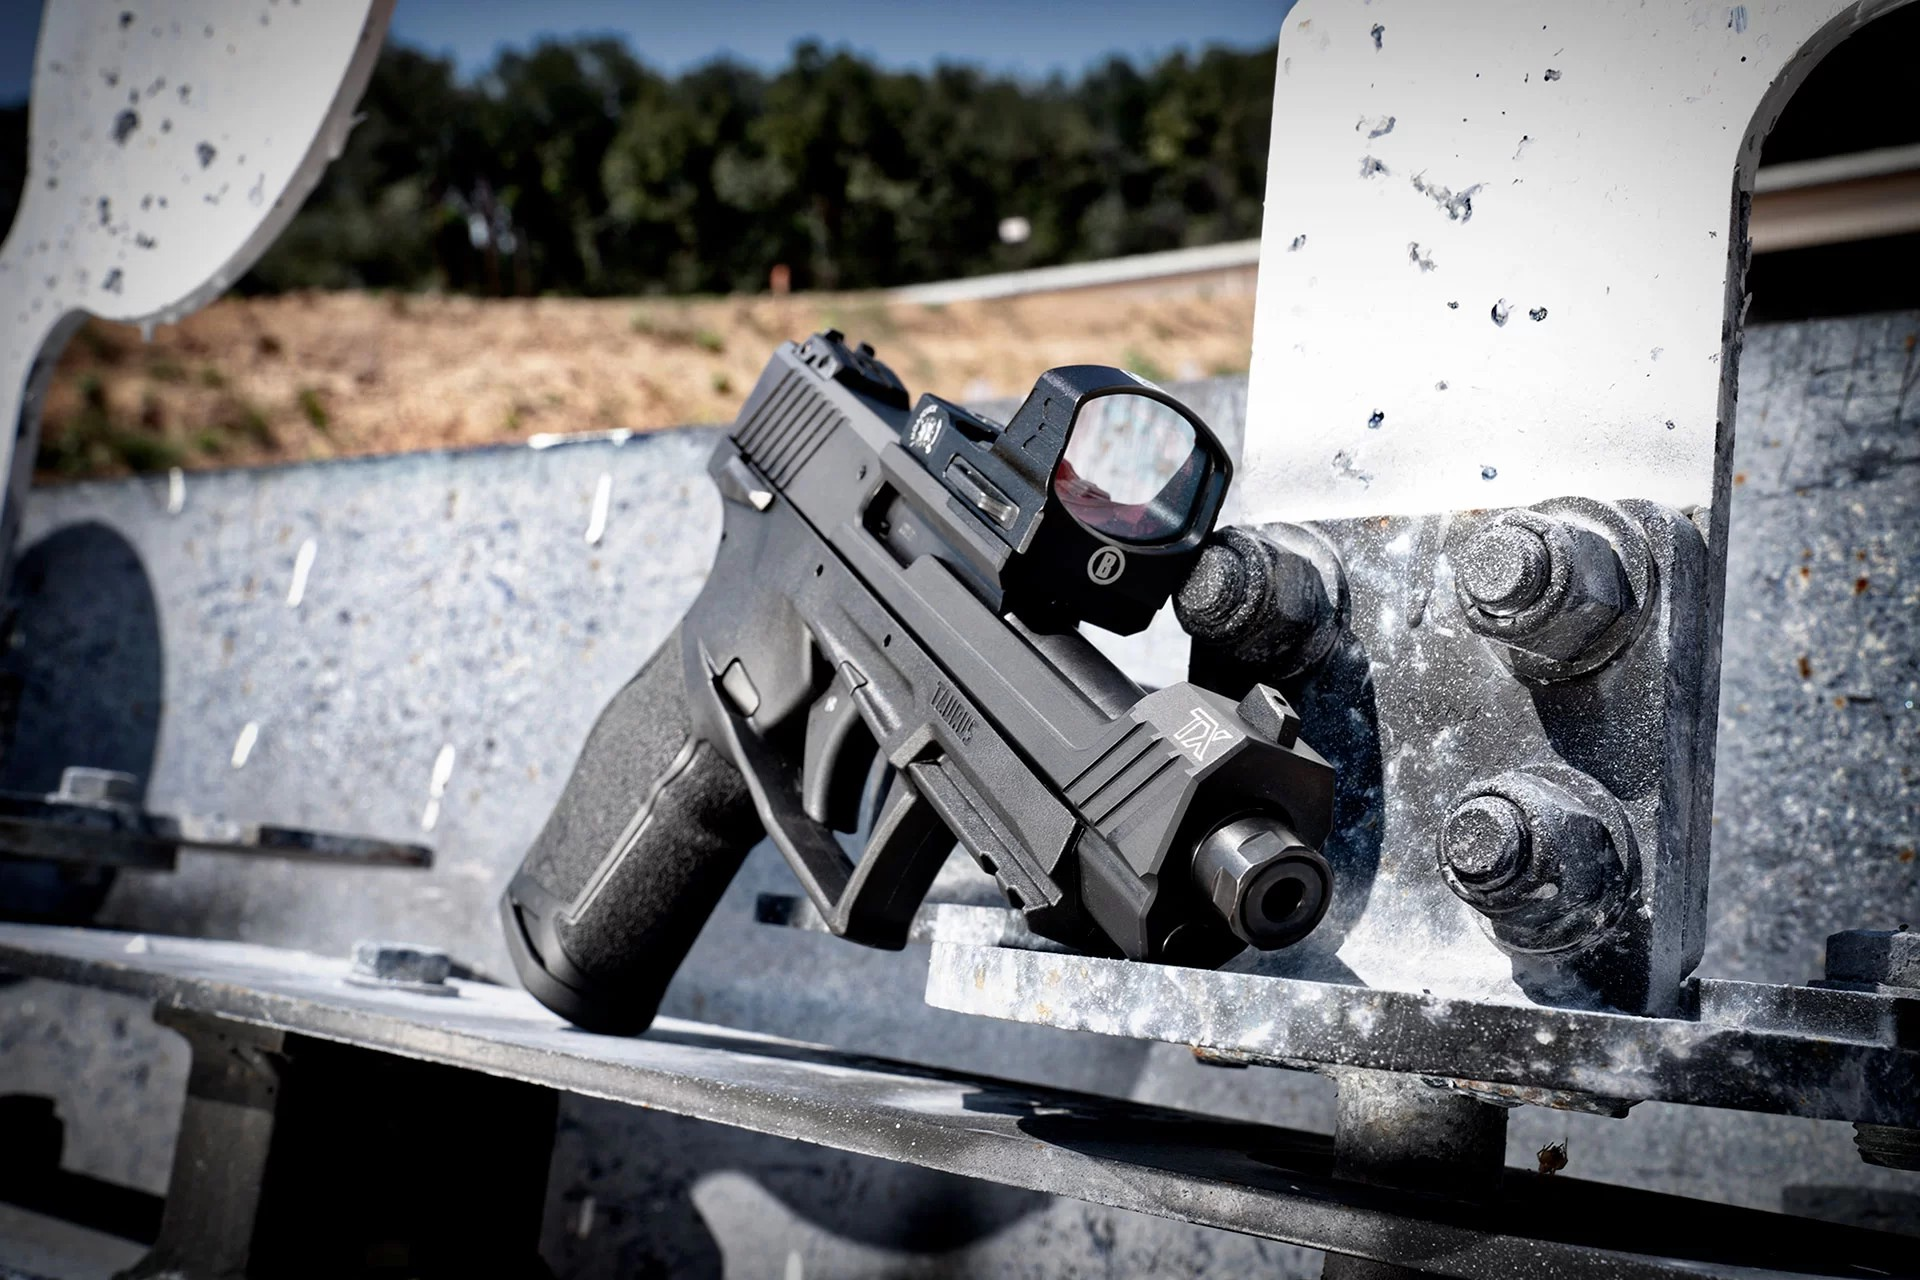 TAURUS USA DEBUTS THE TAURUS TX 22 COMPETITION MODEL